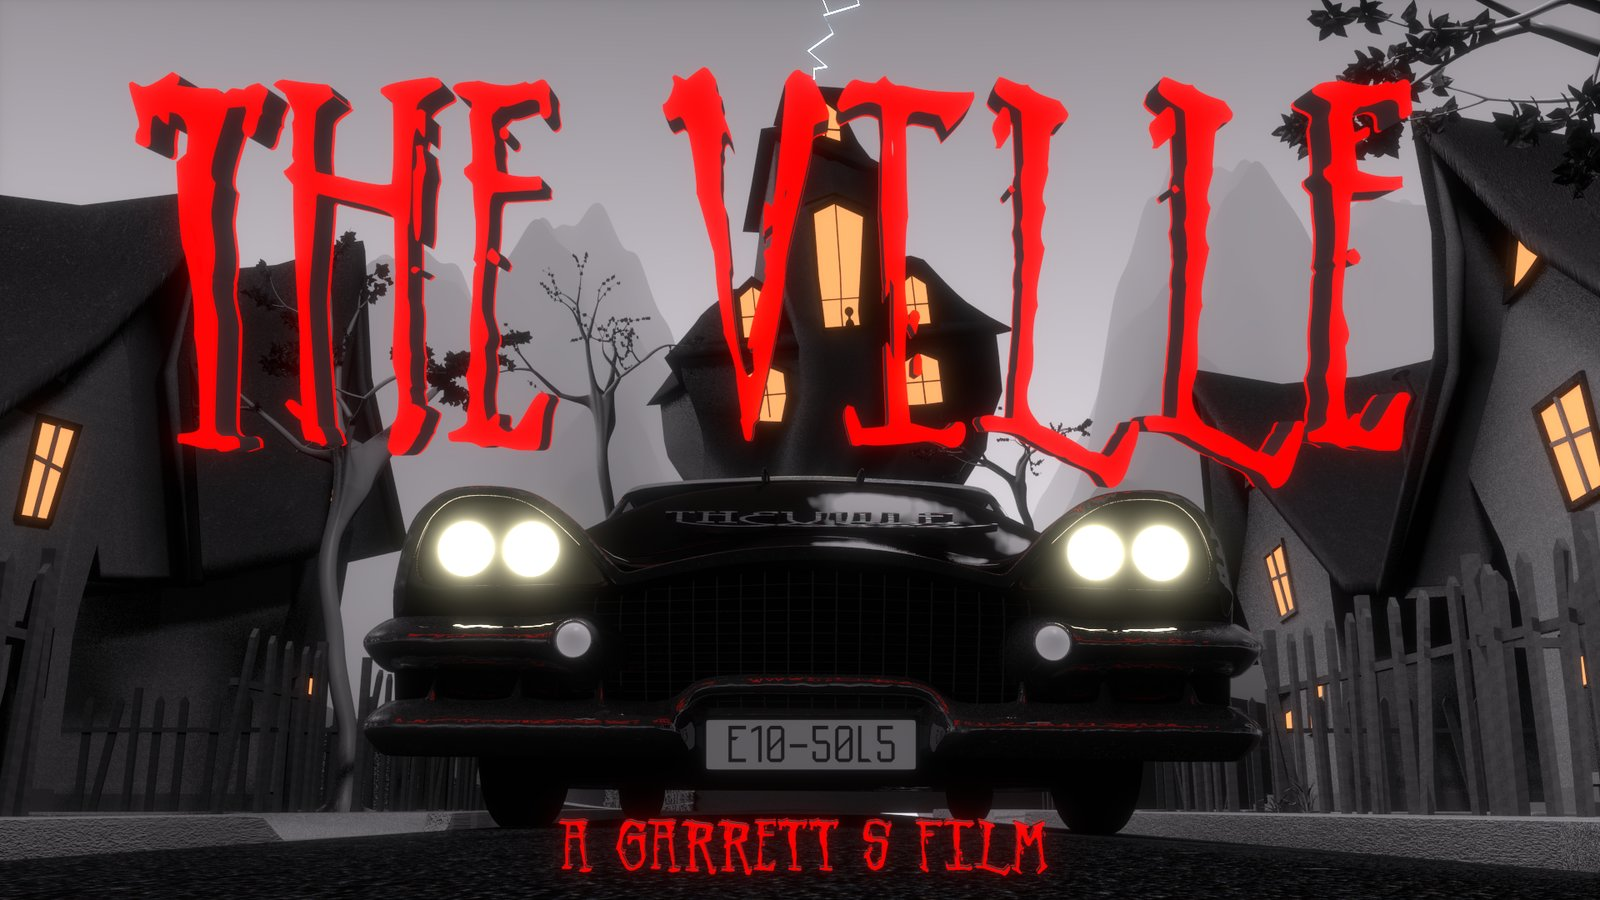 'The Ville' Poster